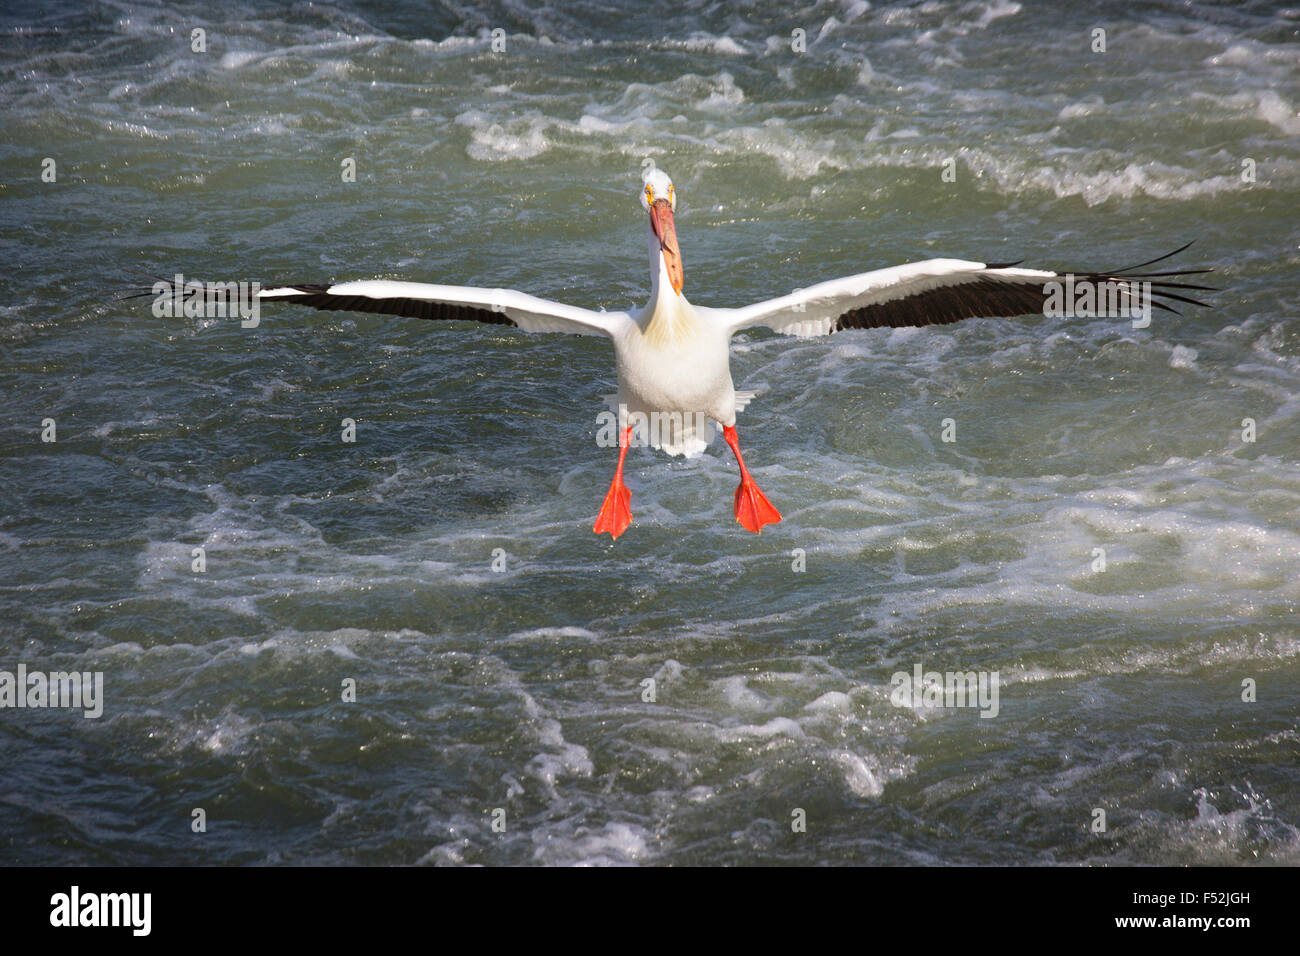 American White Pelican (Pelecanus erythrorhynchos) landing on the Saskatchewan River - Stock Image